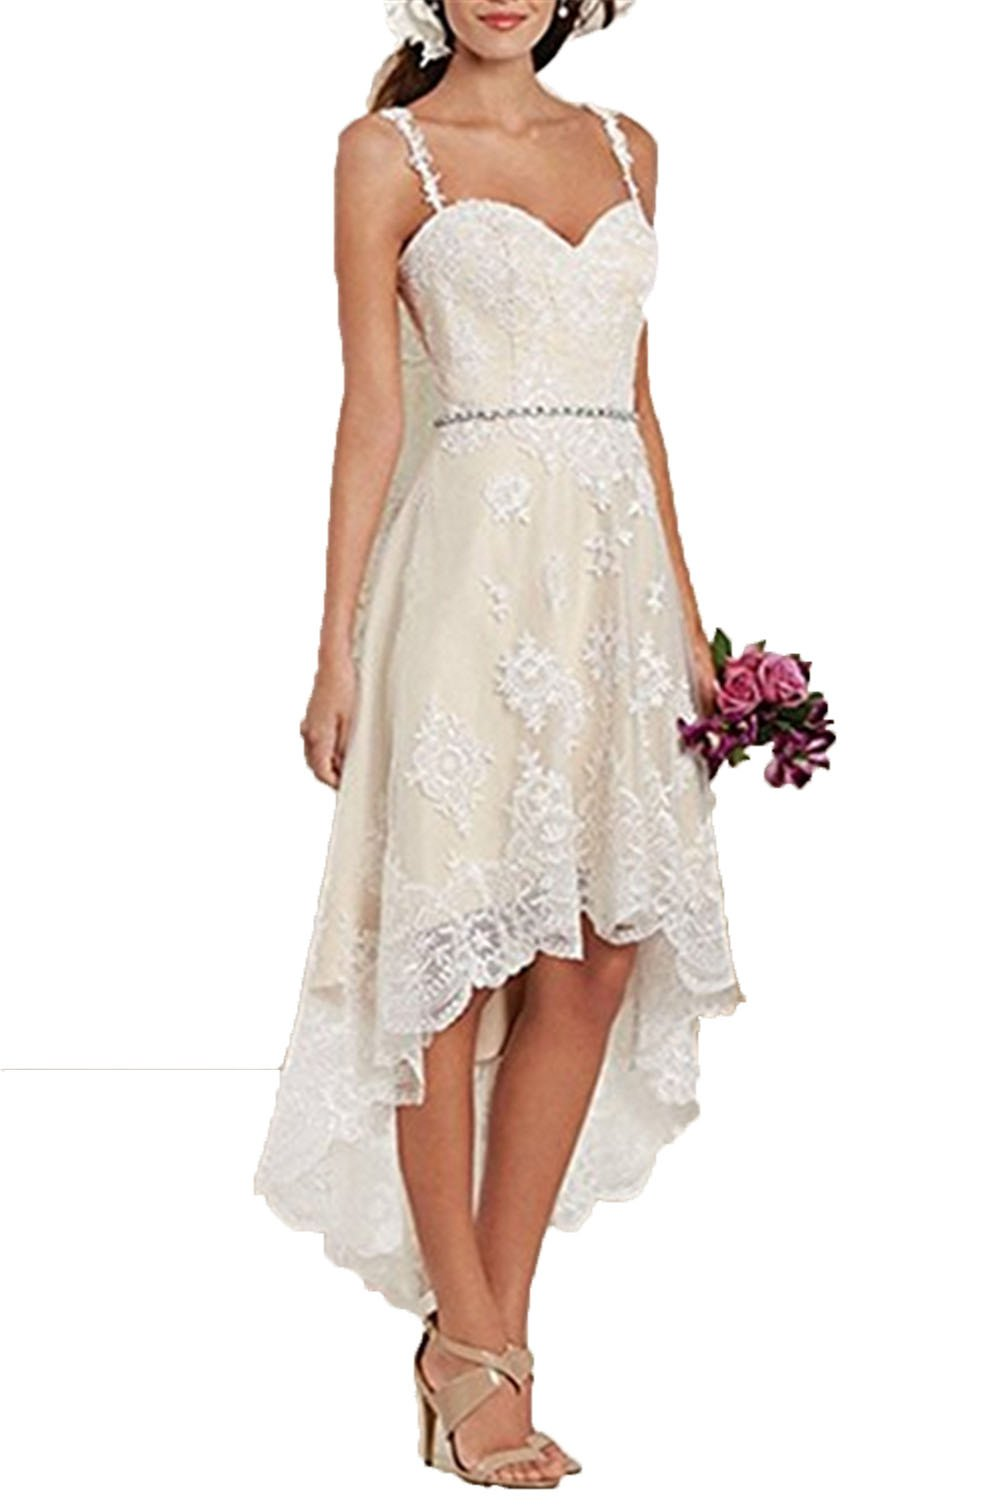 Uryouthstyle A-line Spaghetti Wedding Gowns Lace Tiers Bridal Dresses US4 IV